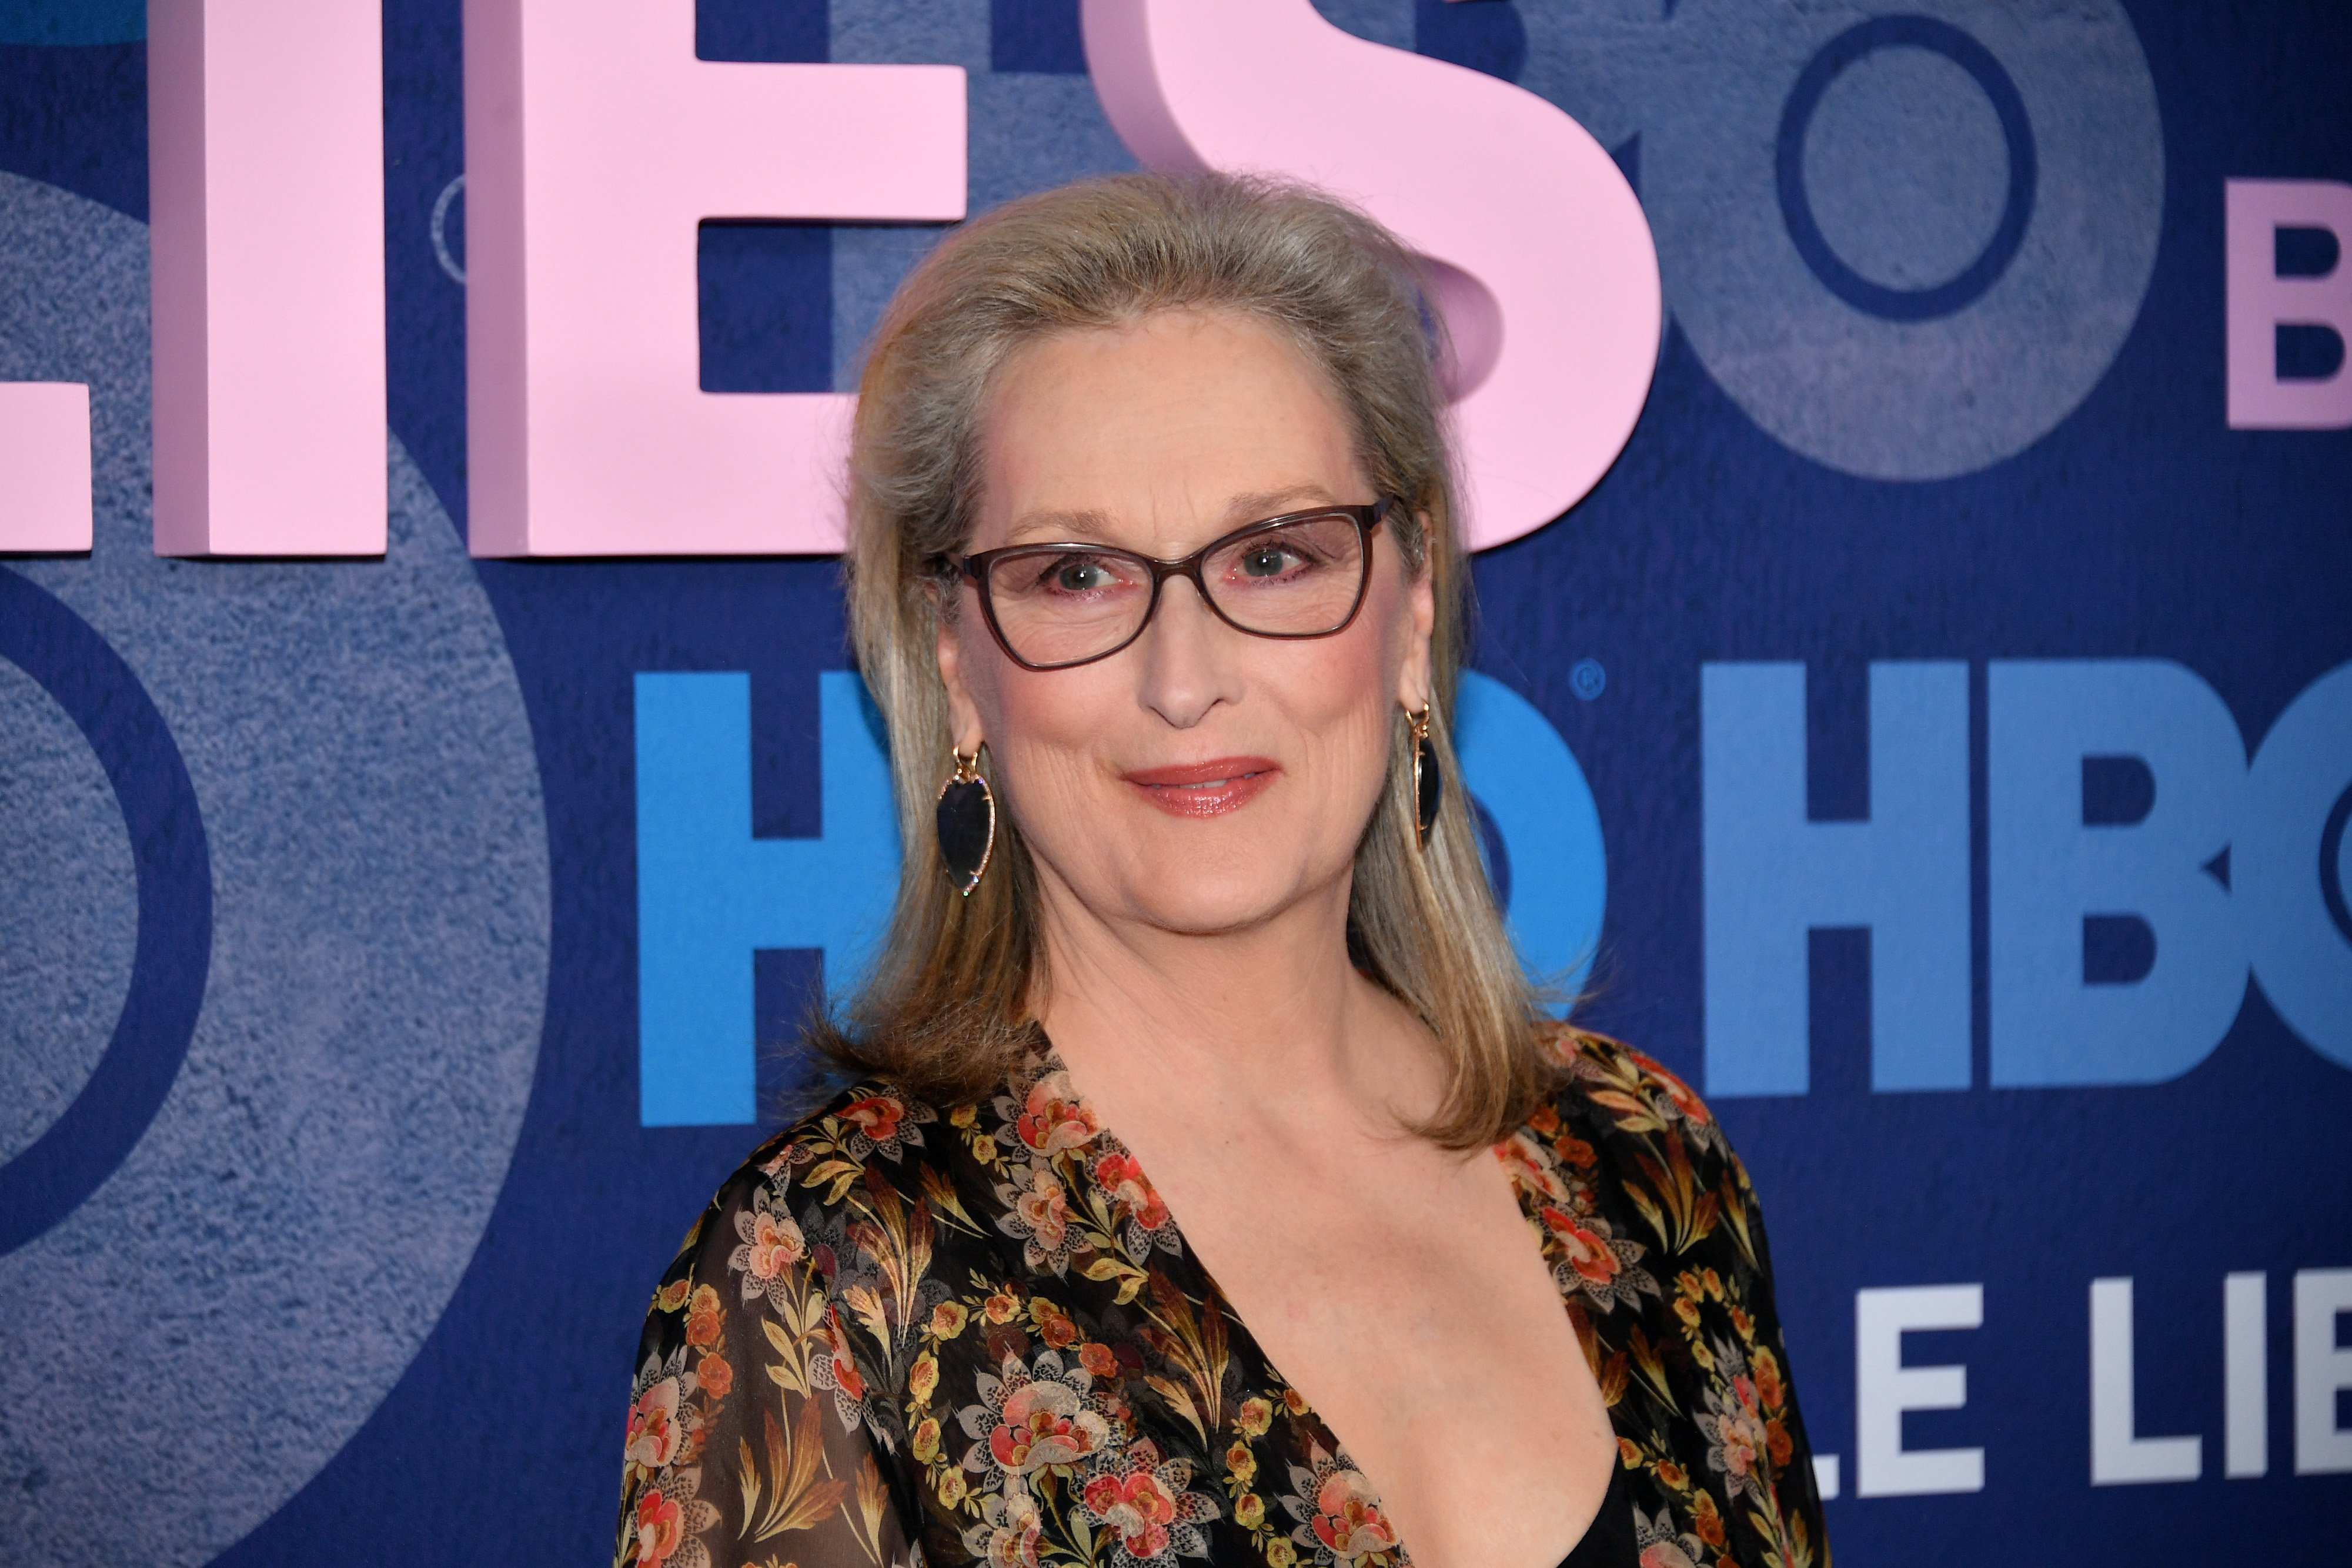 Meryl Streep attends the 70th EE British Academy Film Awards (BAFTA) on February 12, 2017, in London, England. | Source: Getty Images.